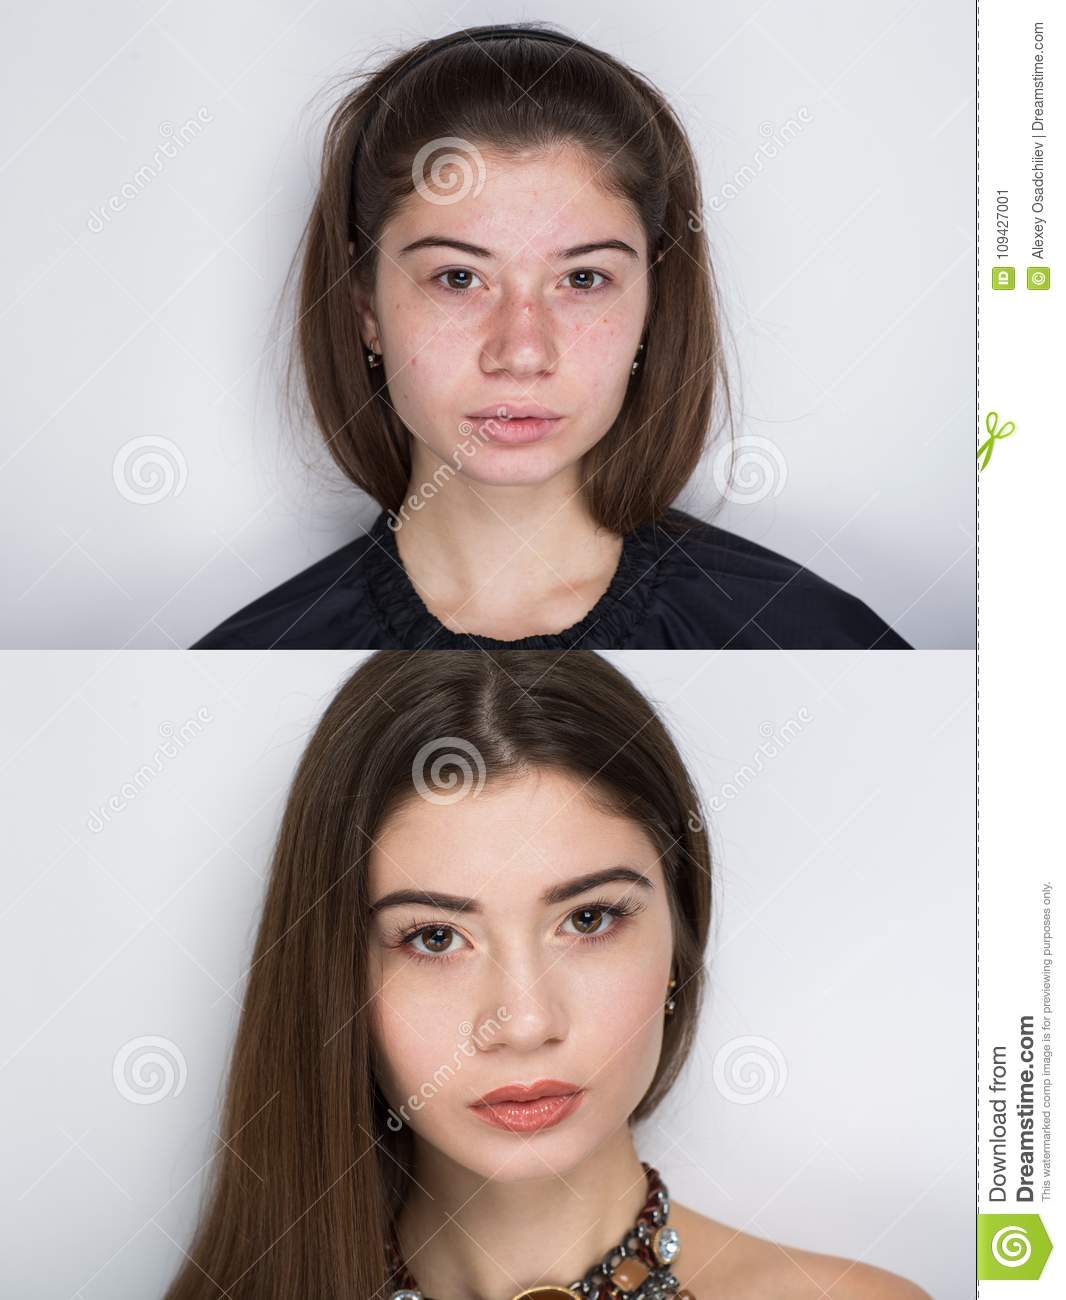 Before After Make Up Stock Image Image Of Makeup -8742